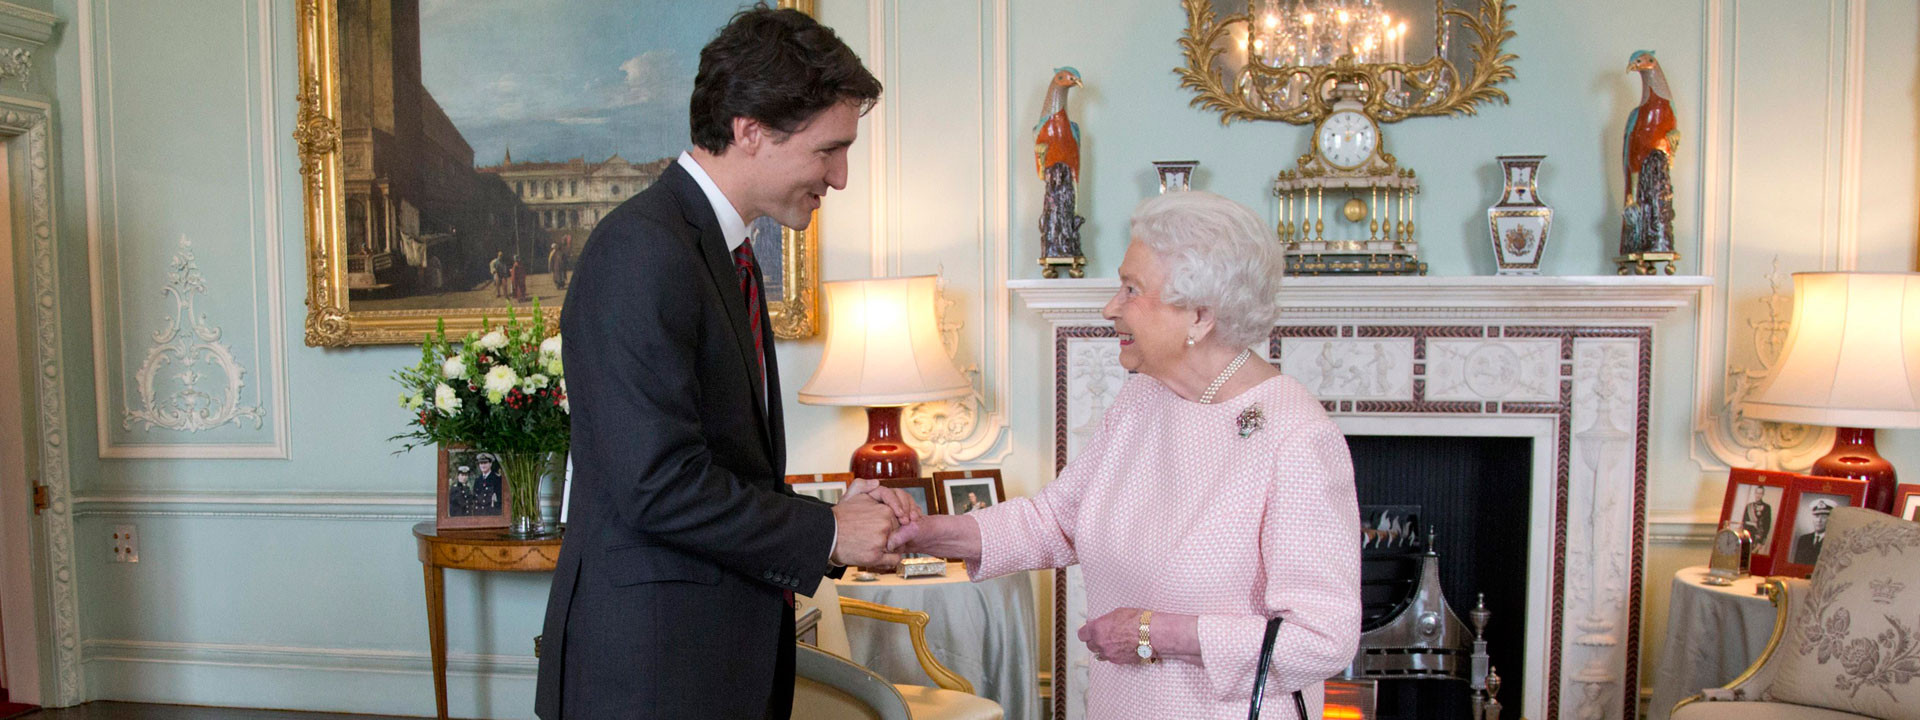 The Prime Minister Meets the Queen of Canada